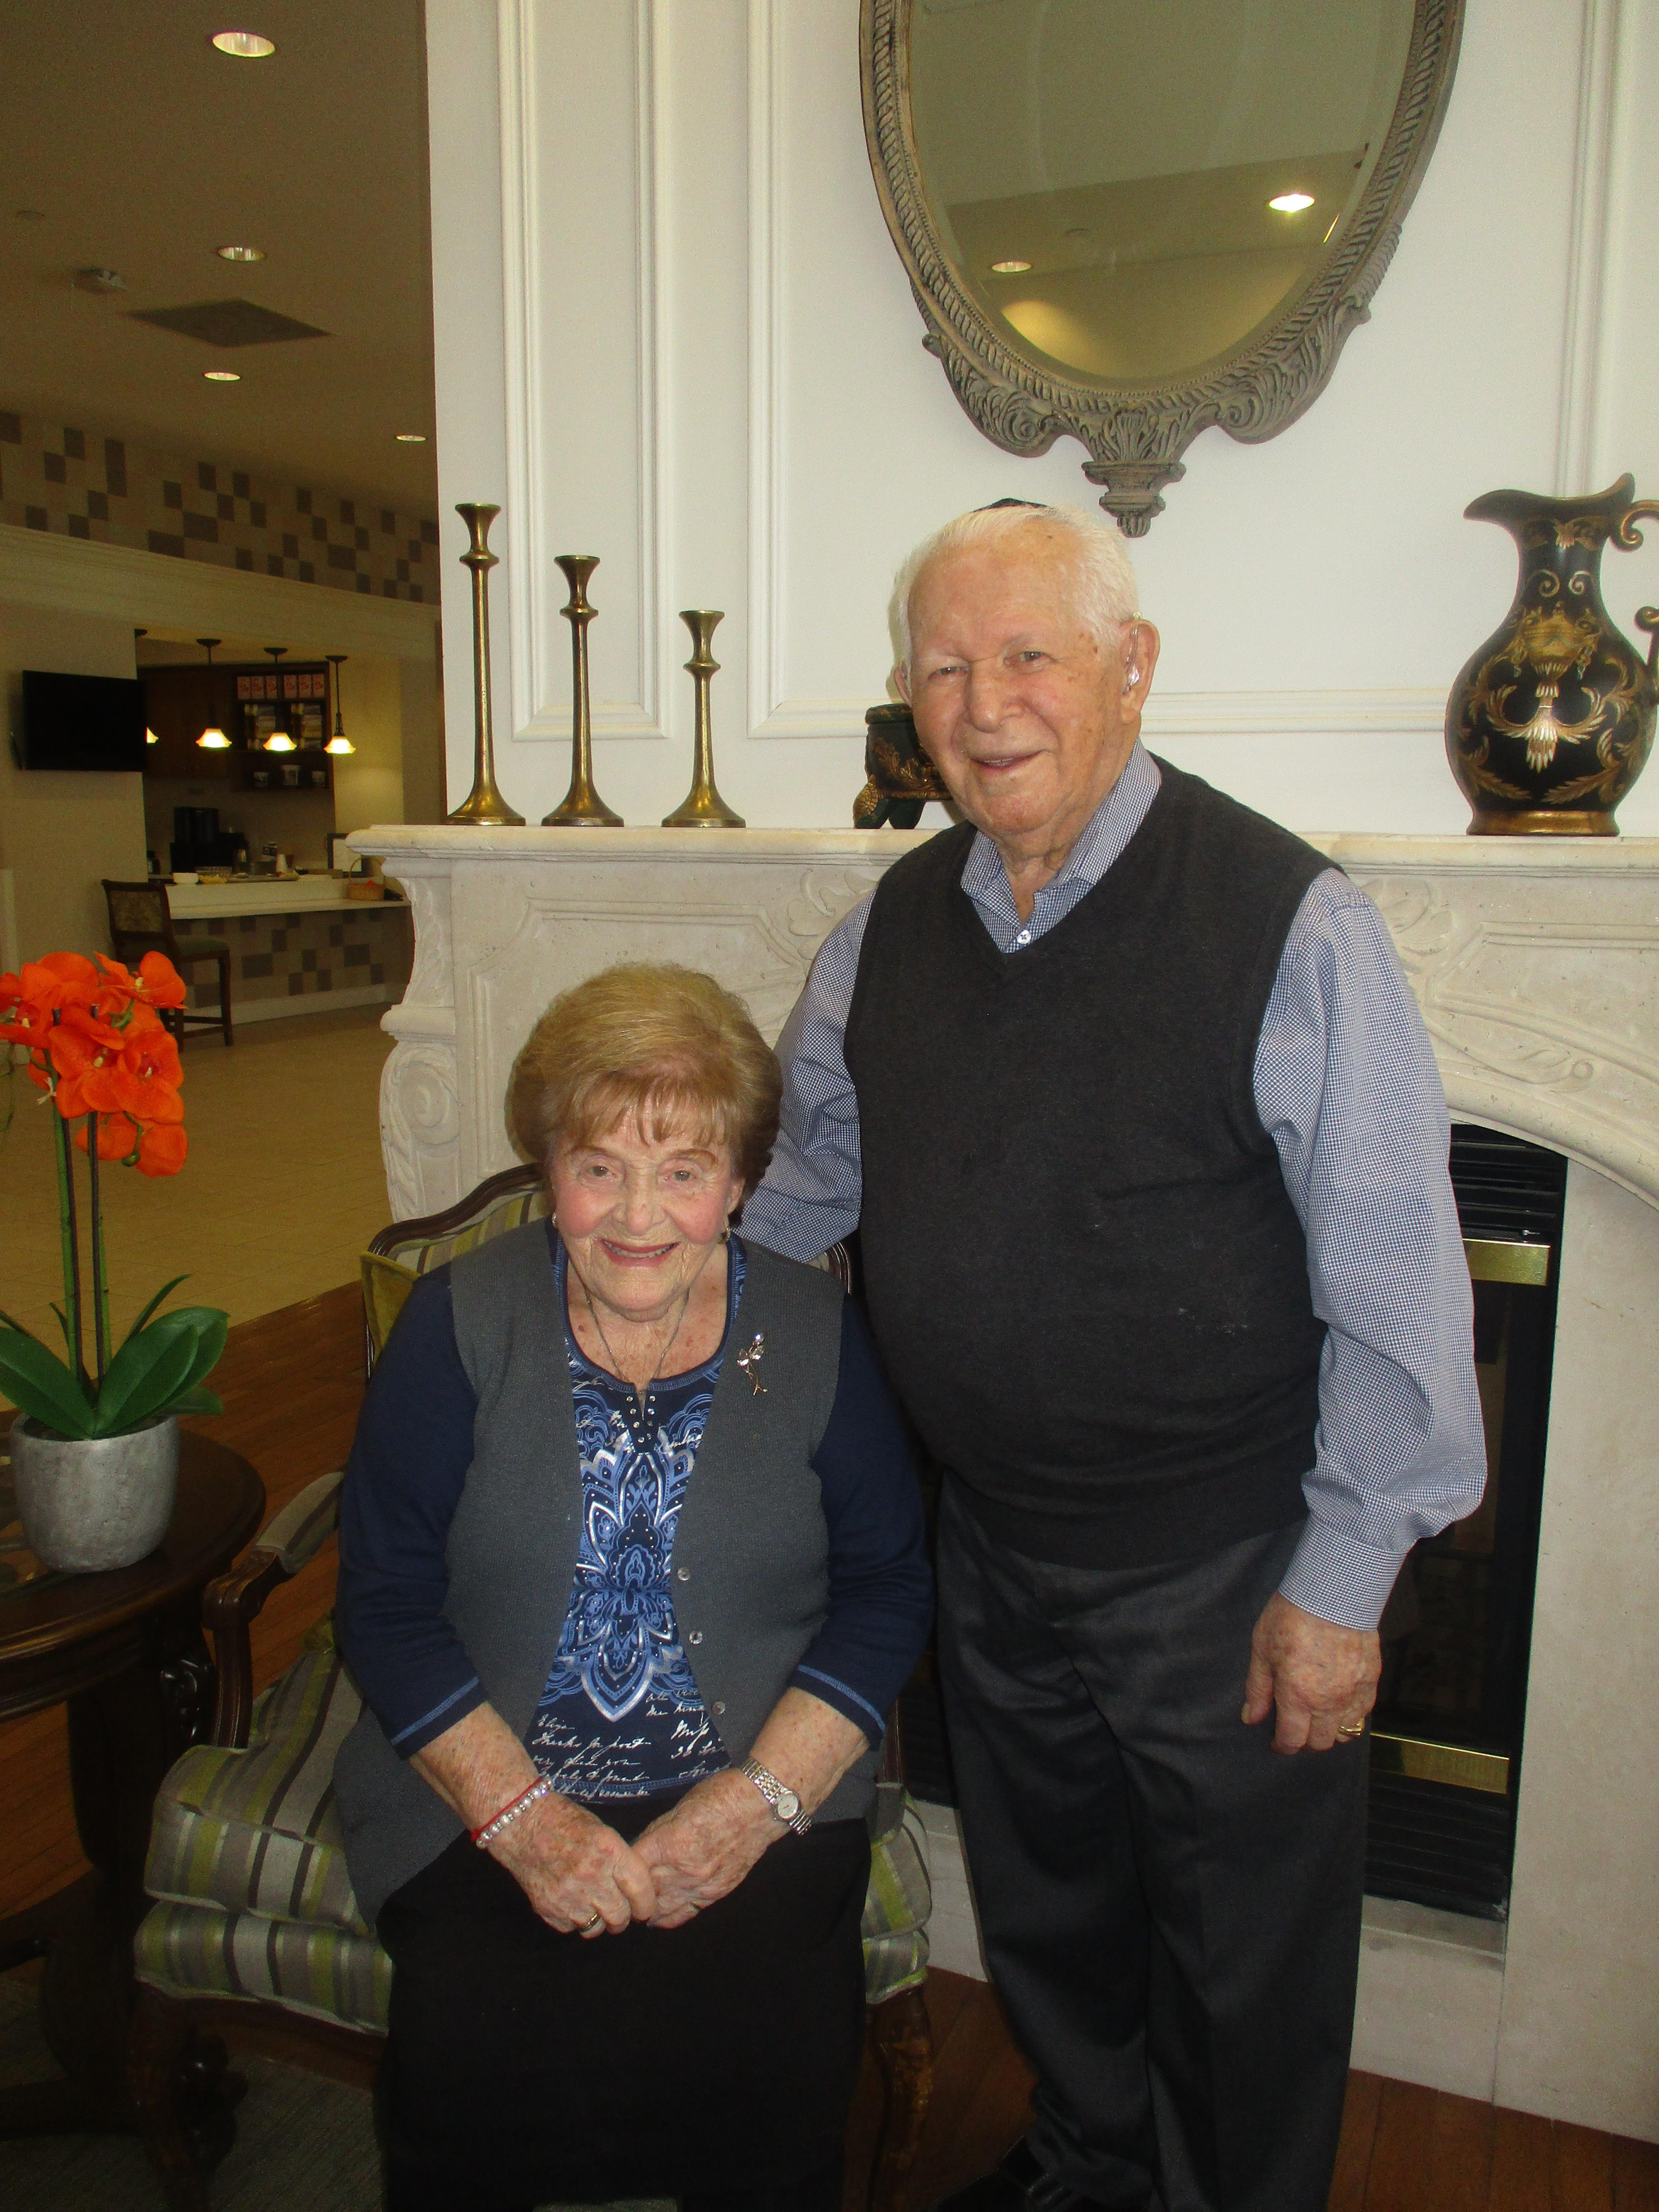 Nancy and Howard pose for a picture at Kensington Place Retirement Residence, where they live